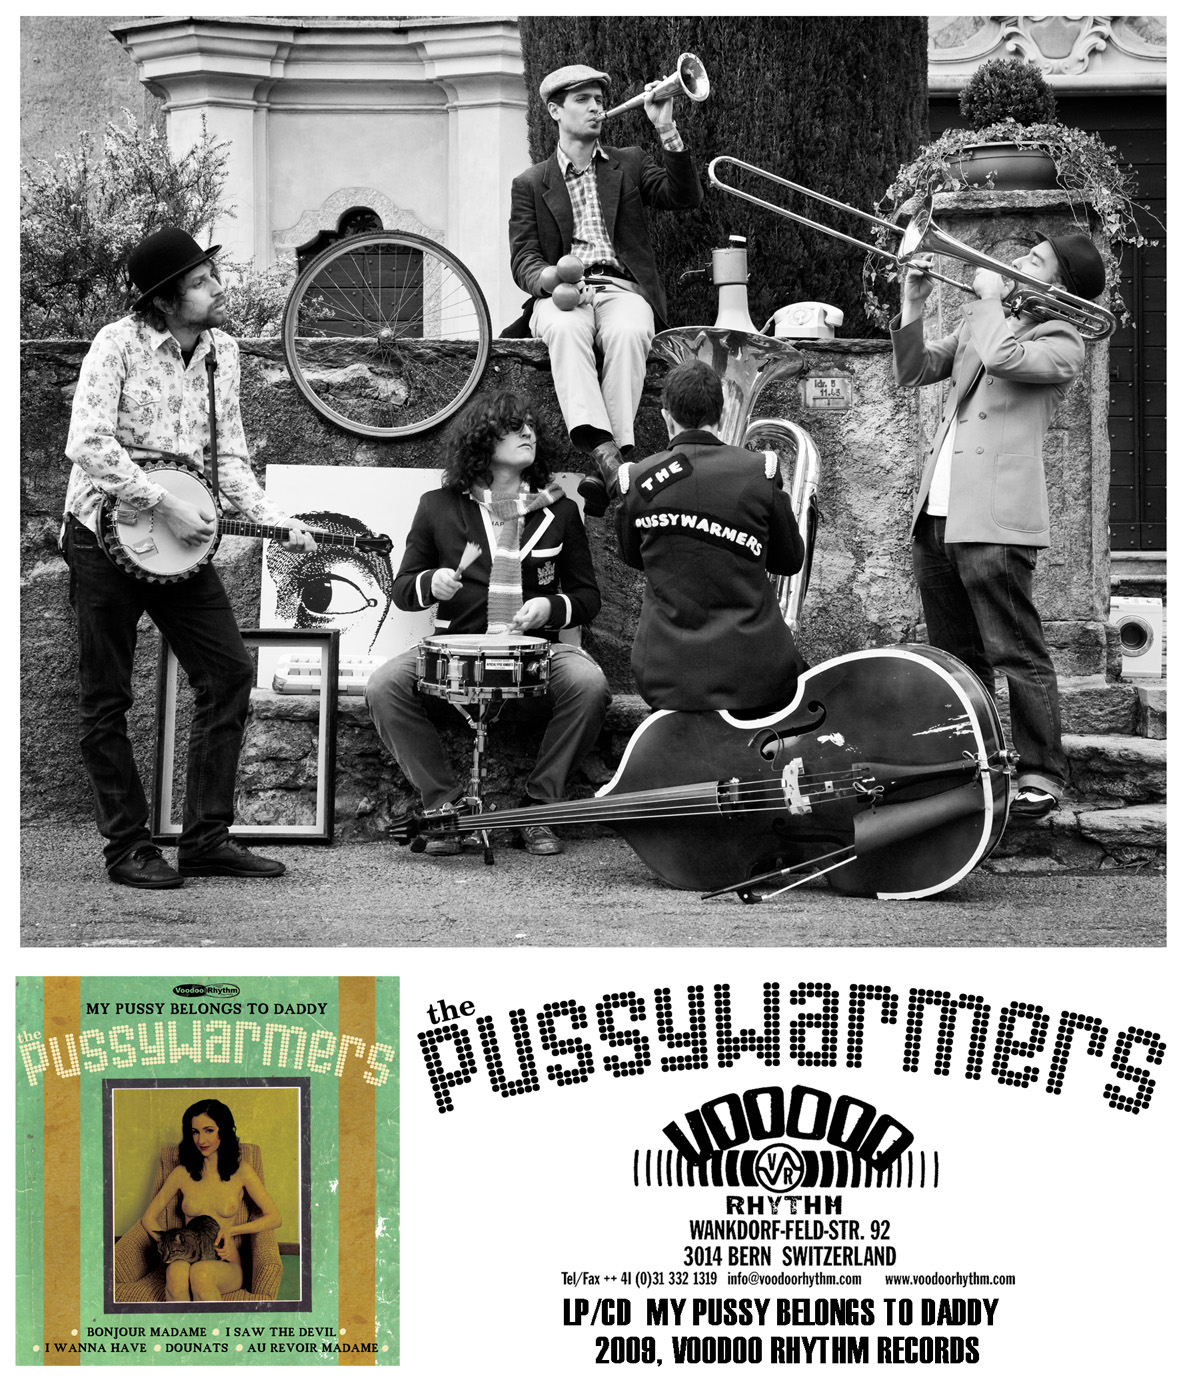 THE PUSSYWARMERS